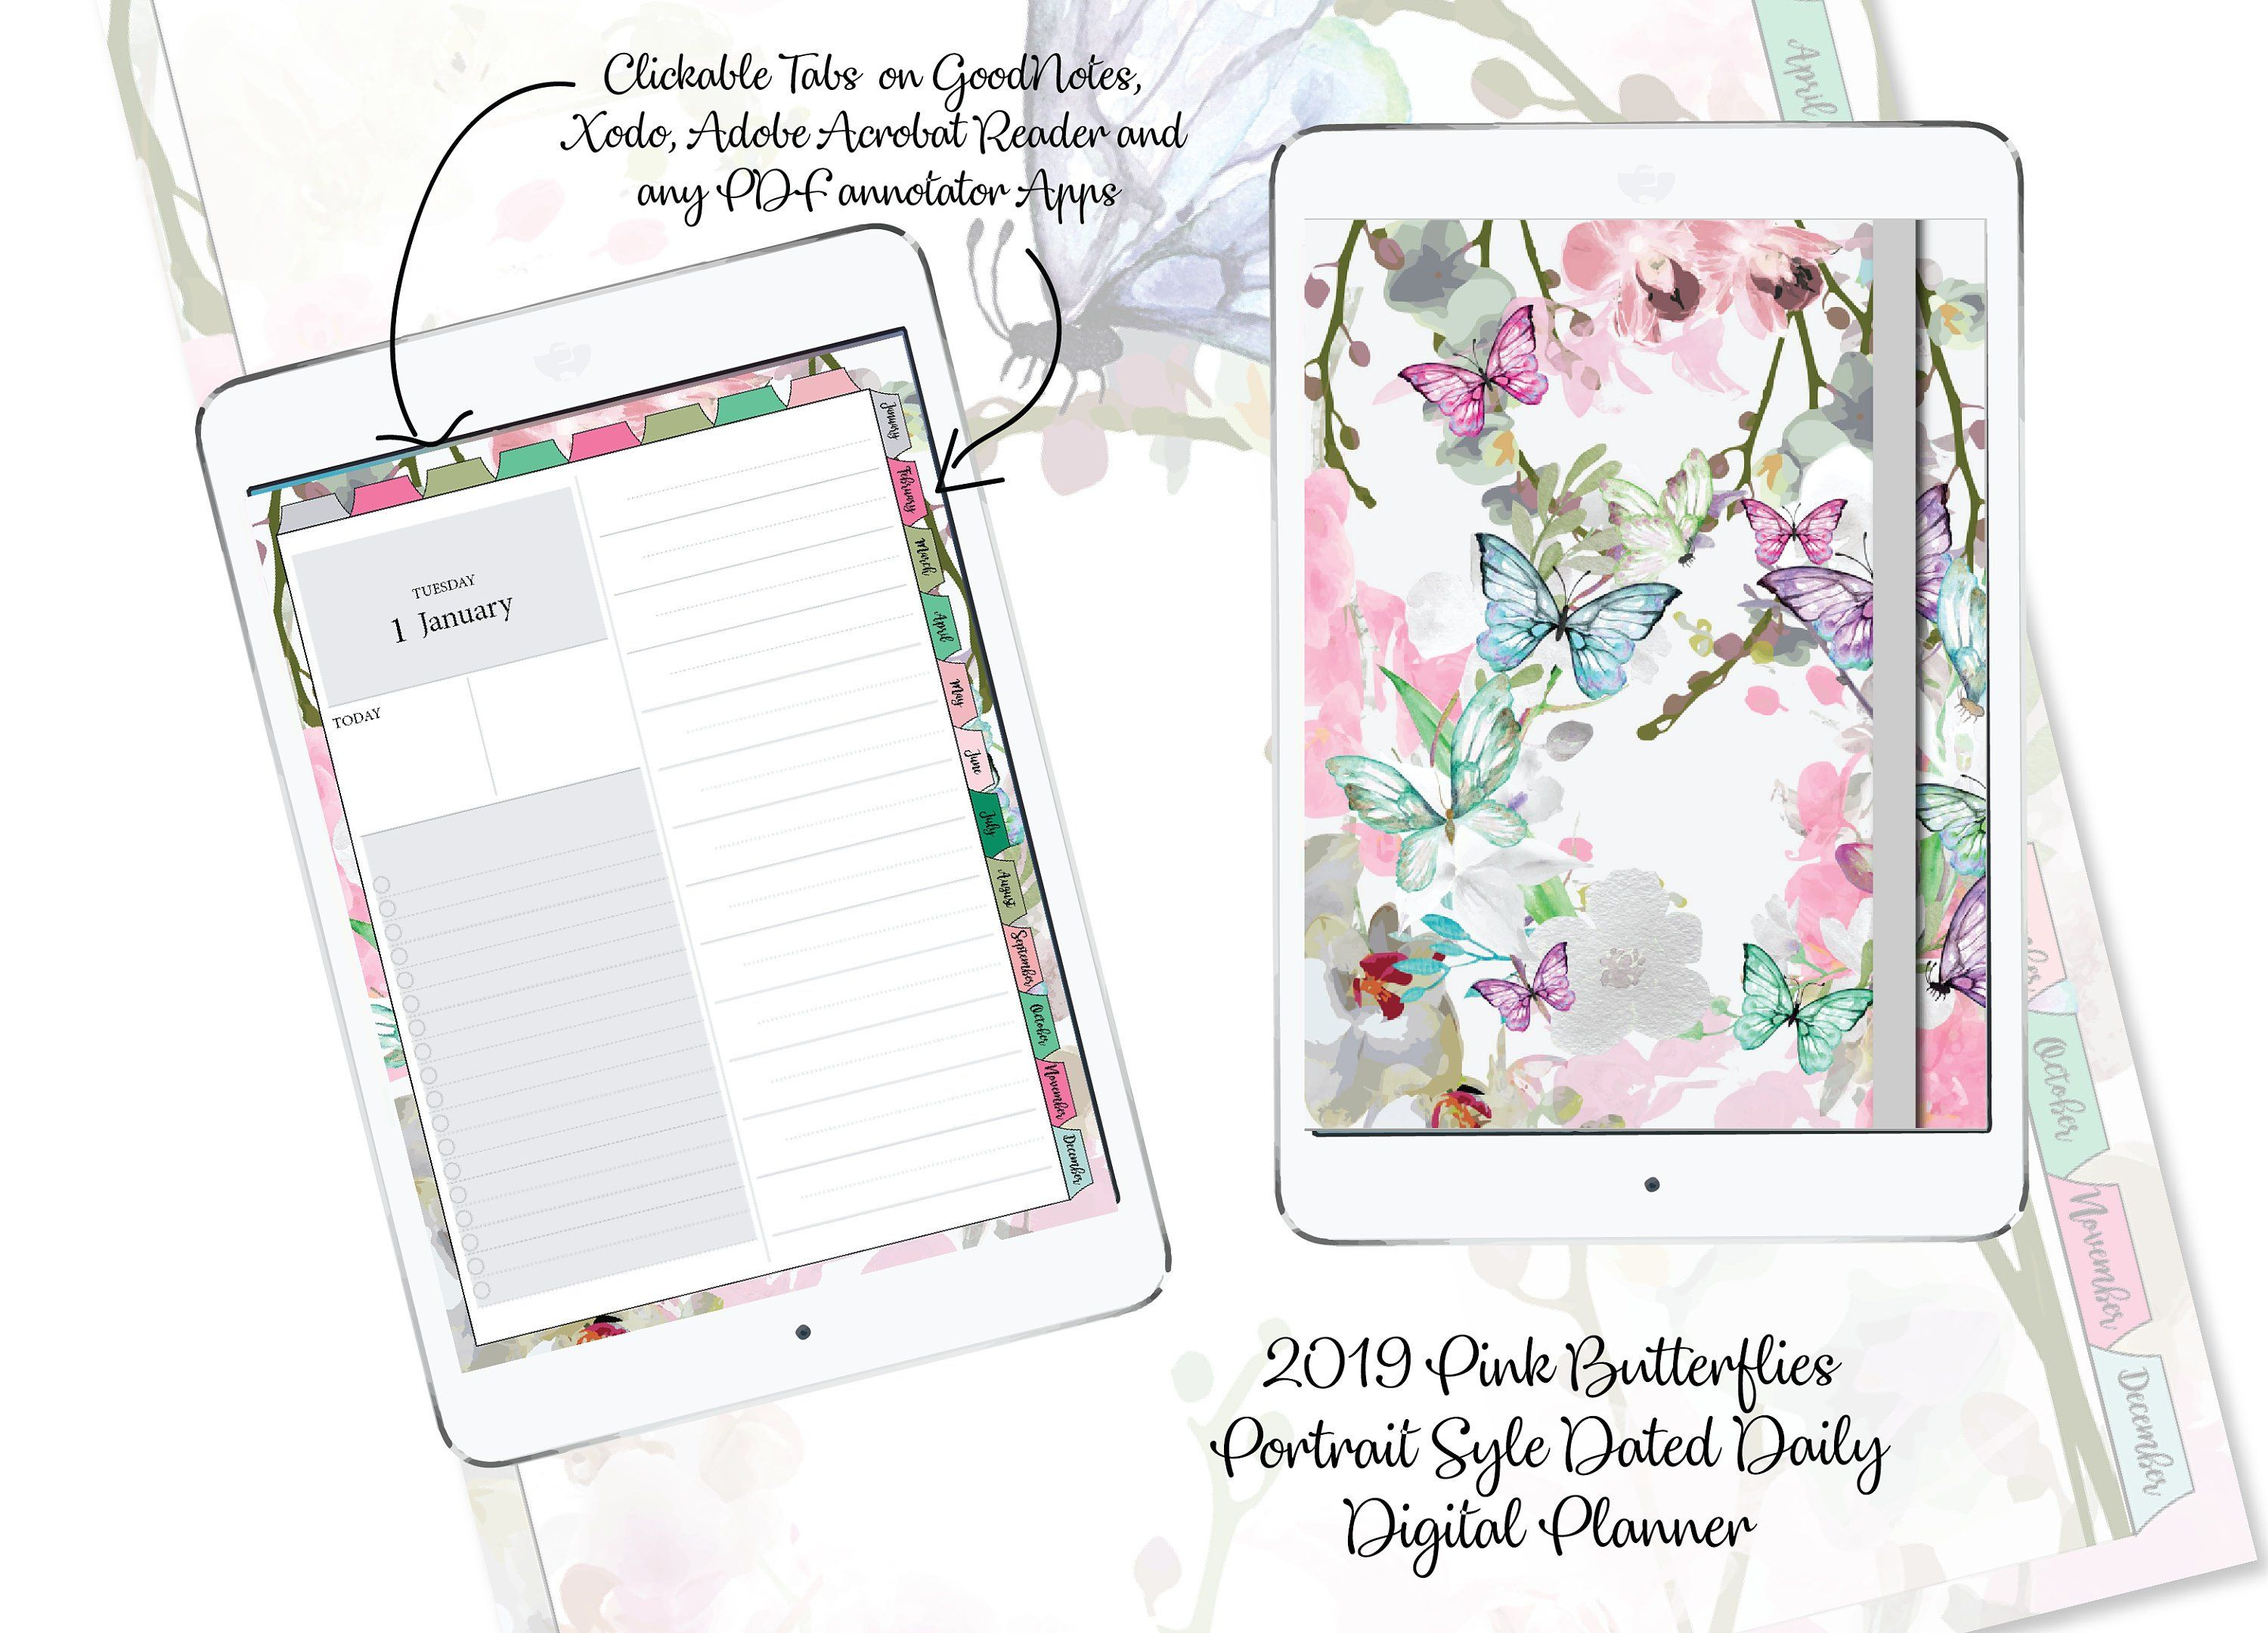 Pin by PrettyDigiDesigns on Digital Planners | Application